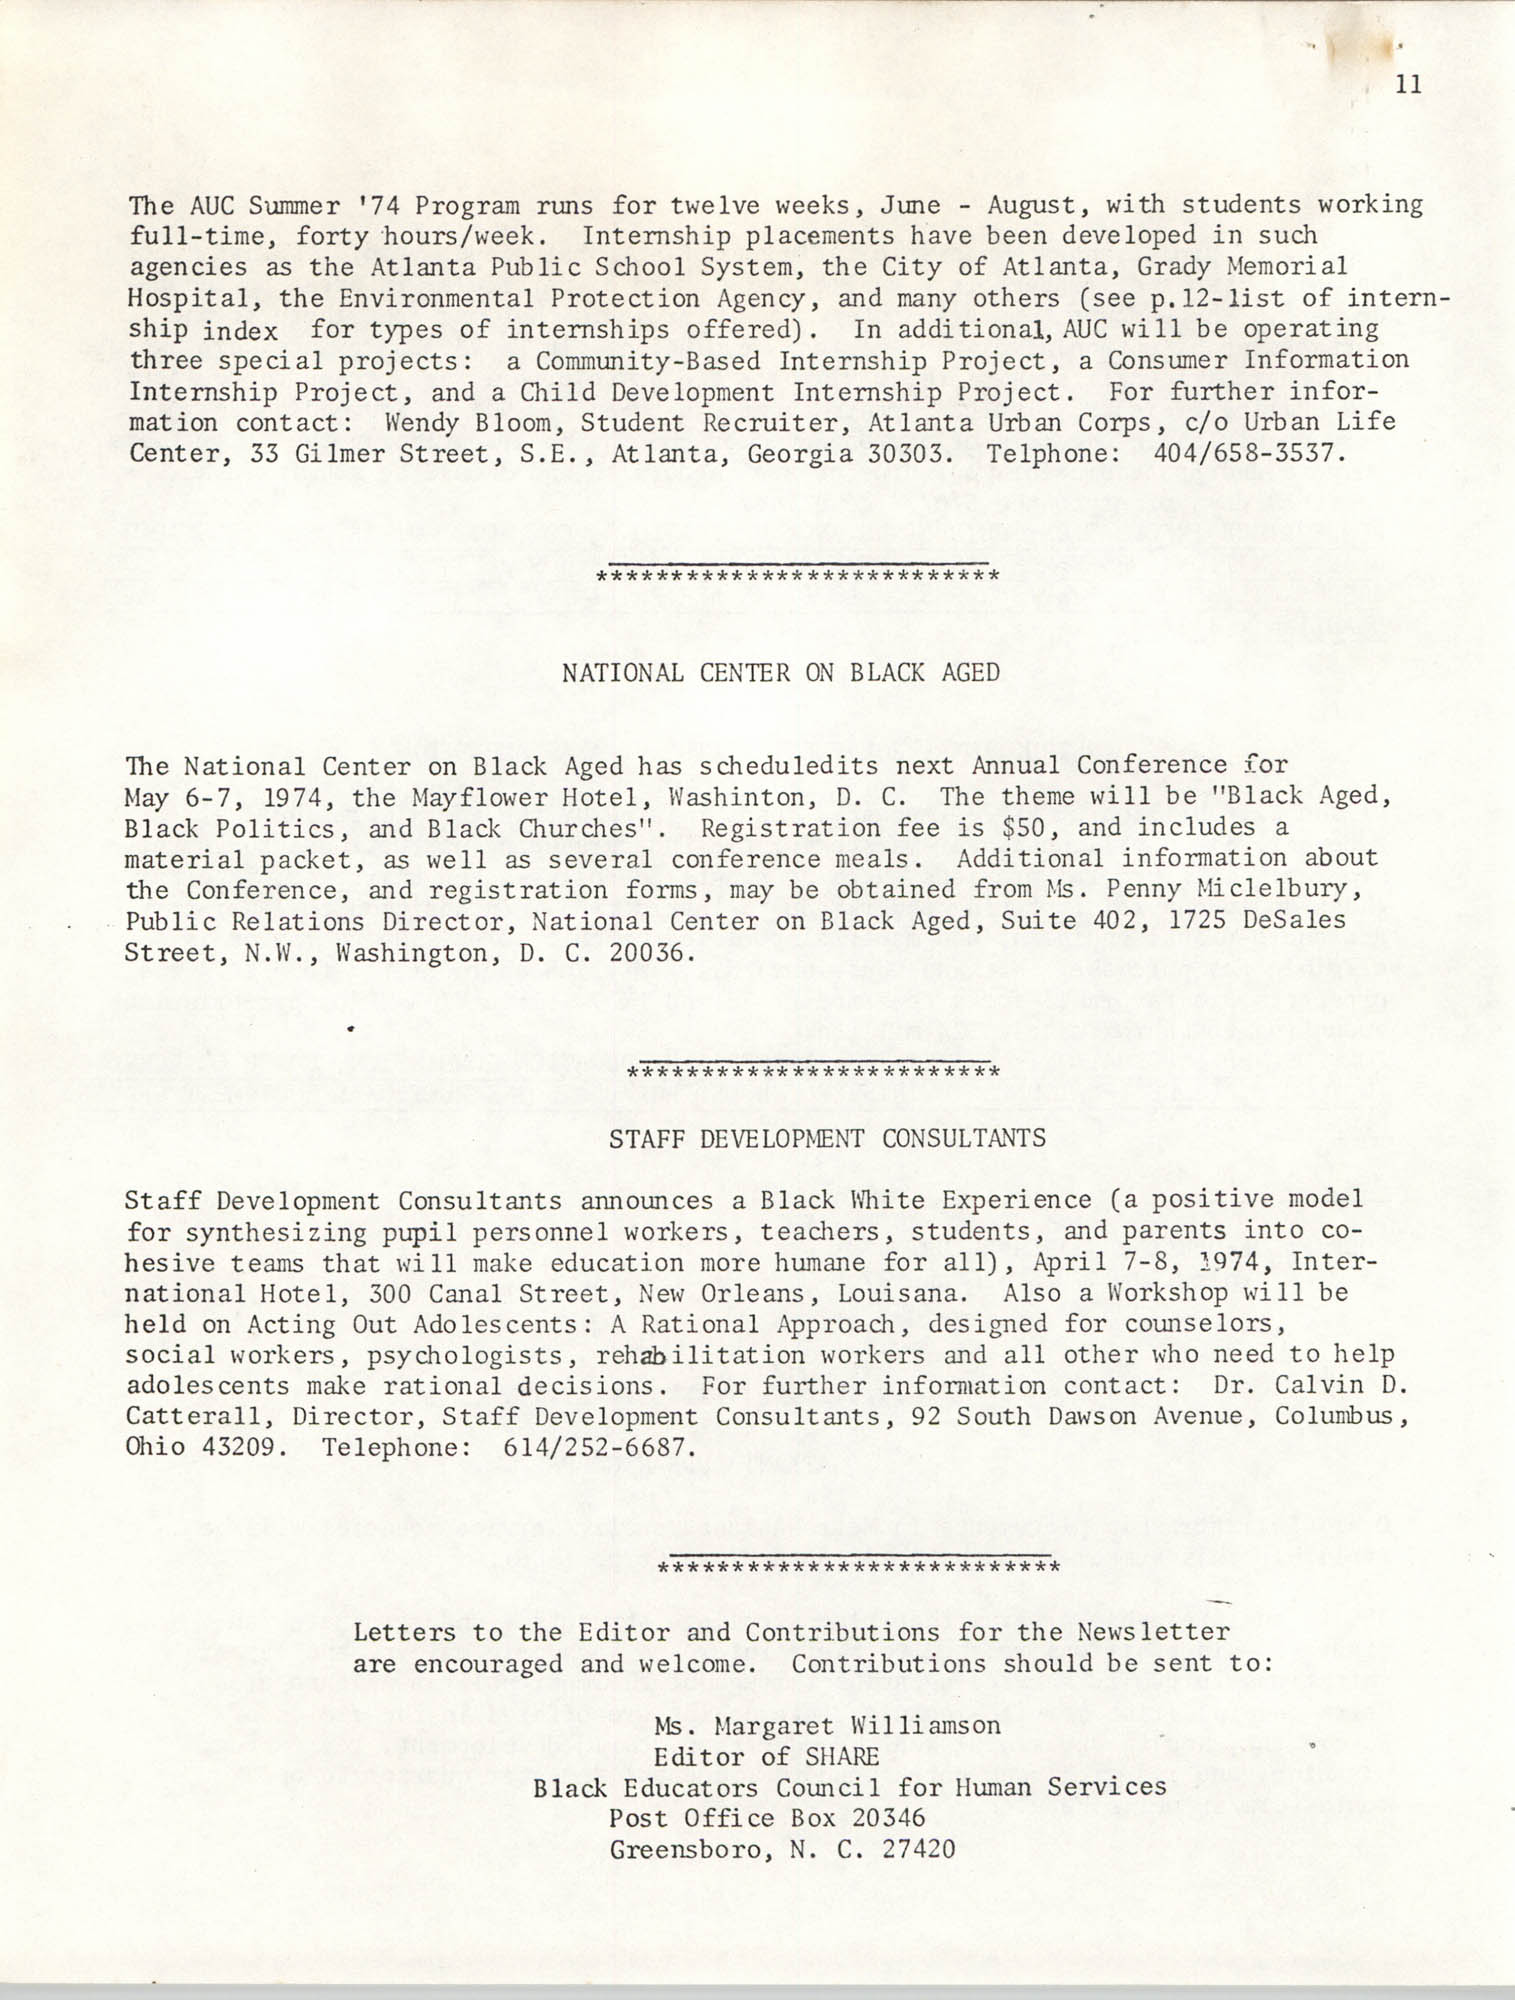 SHARE, Volume II, Number 3, March 1974, Page 11